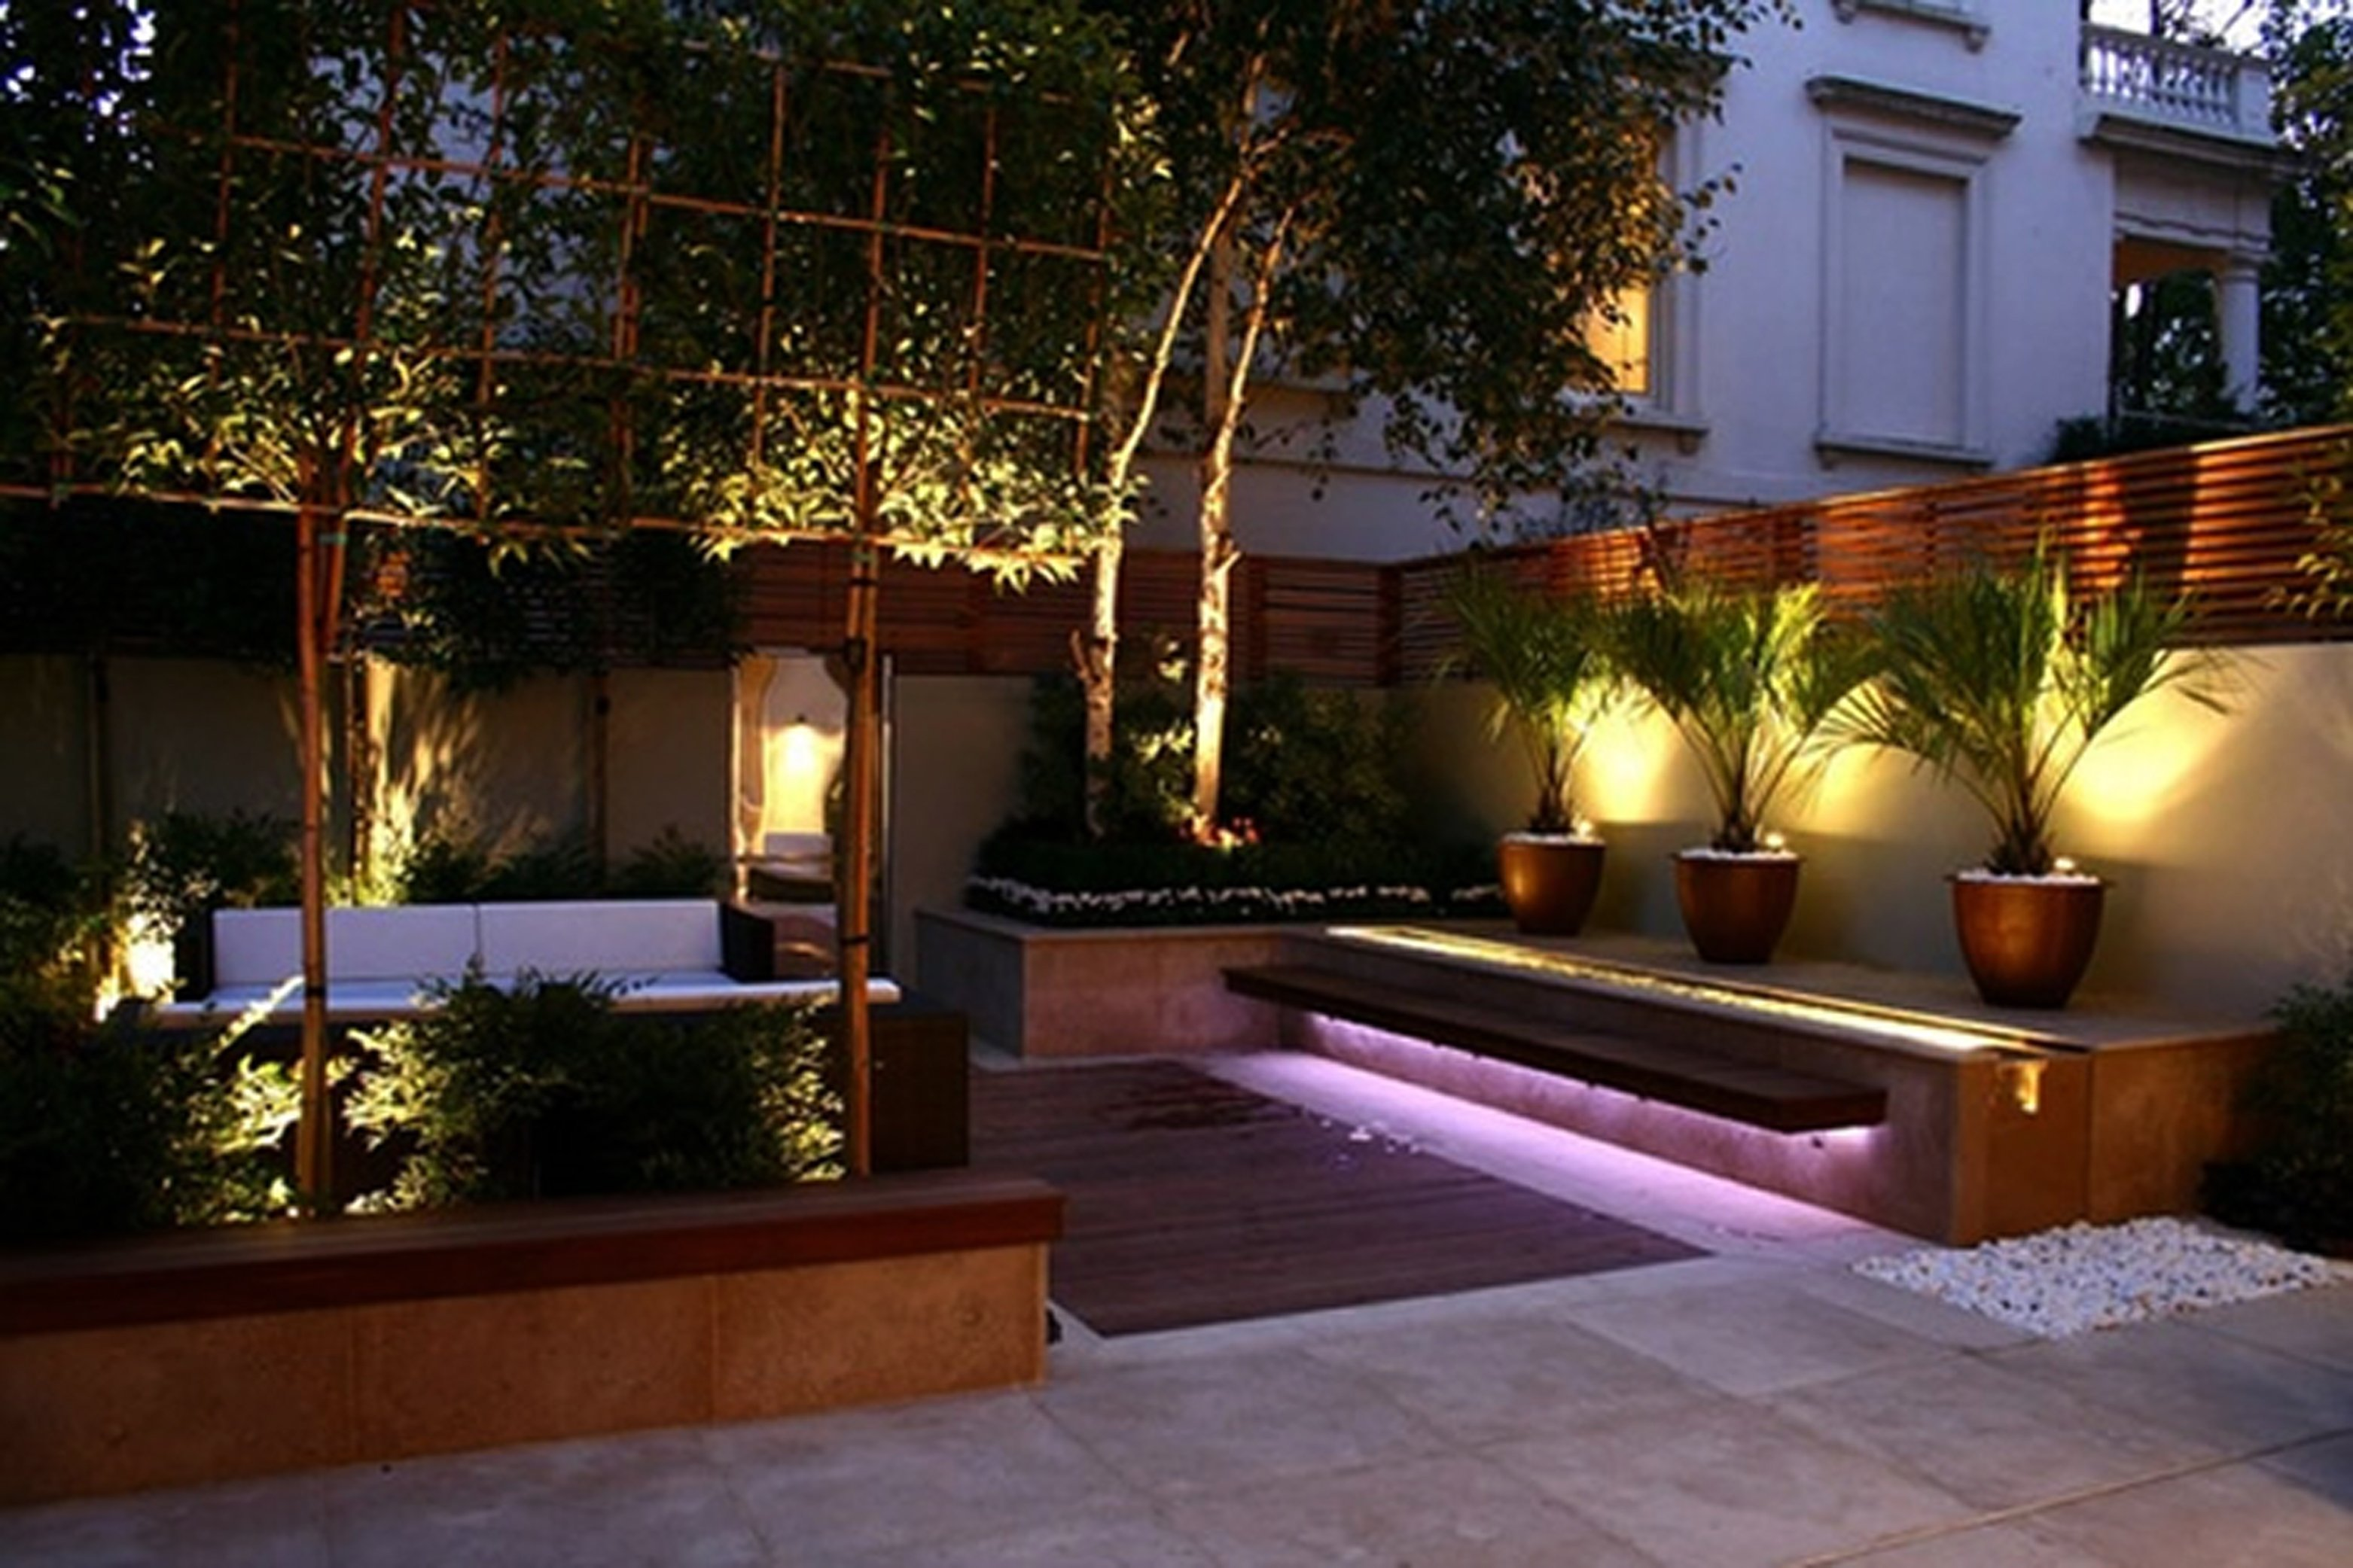 Ideas para decorar exteriores en primavera for Ideas decoracion jardines exteriores